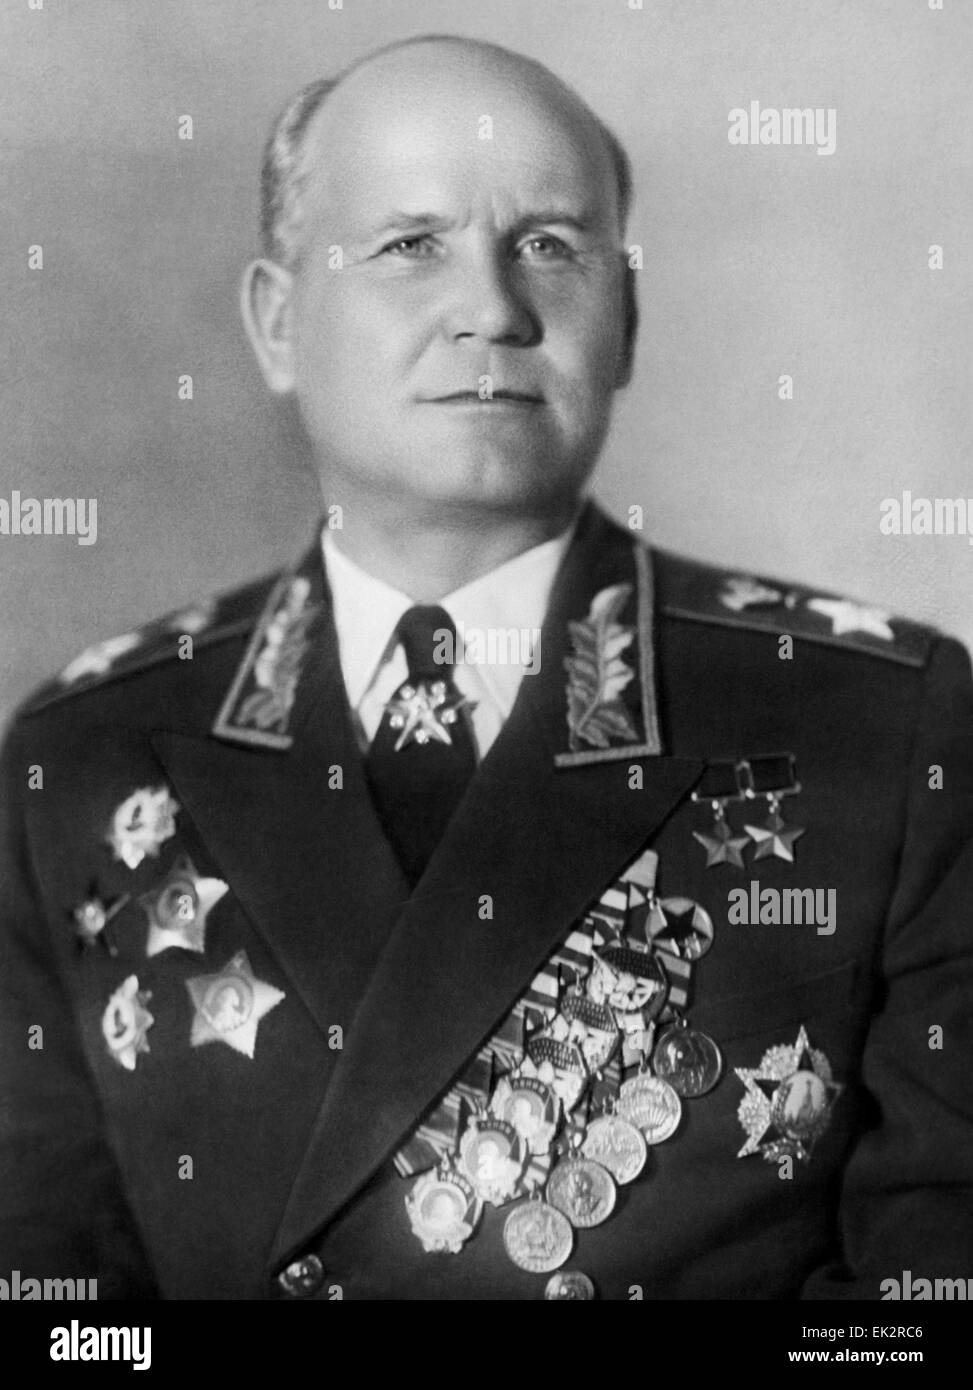 Moscow. Marshal of the Soviet Union Ivan Konev. - Stock Image